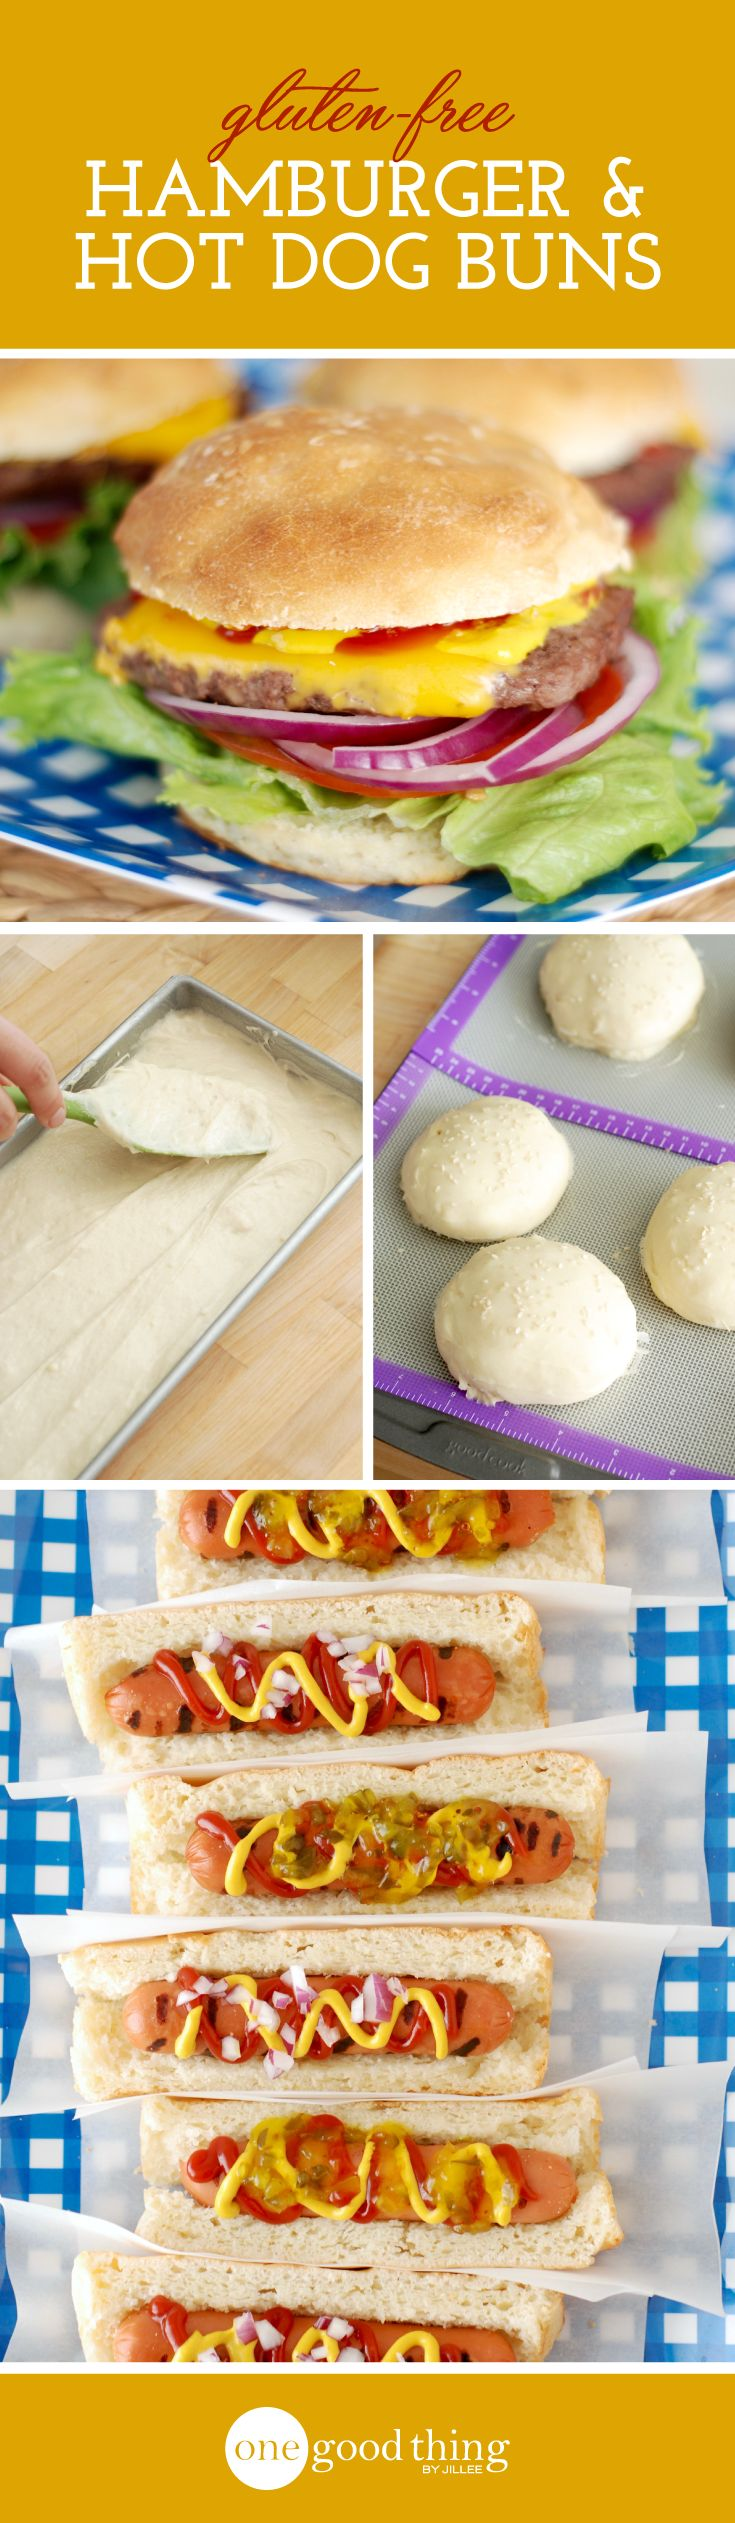 How to Make Delicious Gluten-Free Hamburger and Hot Dog Buns…No, Really!